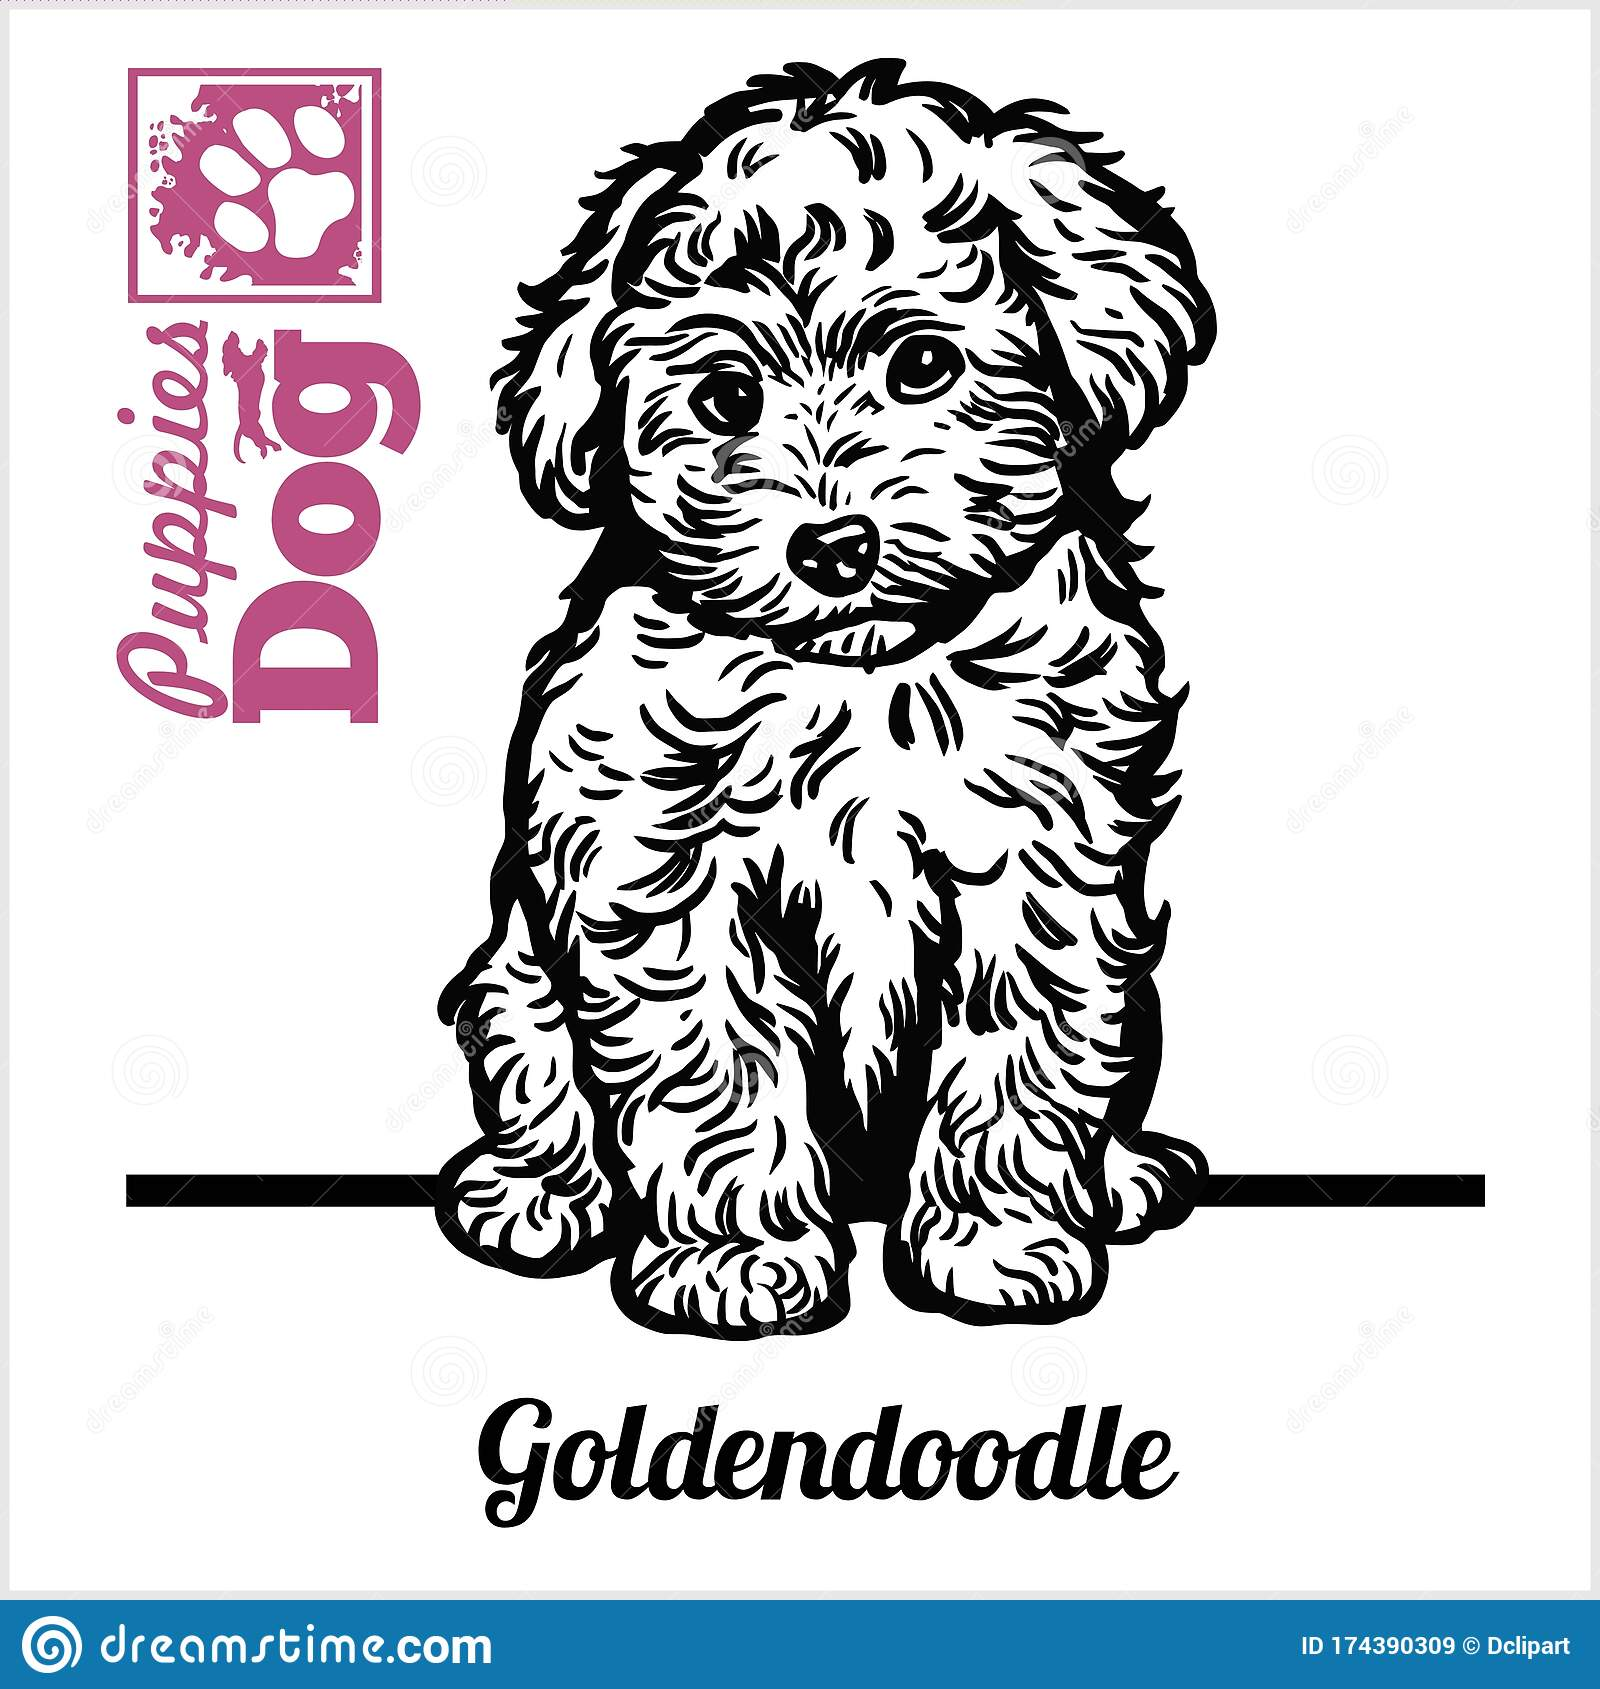 Goldendoodle Puppy Sitting Drawing By Hand Sketch Engraving Style Black And White Vector Image Stock Vector Illustration Of Puppy Drawing 174390309